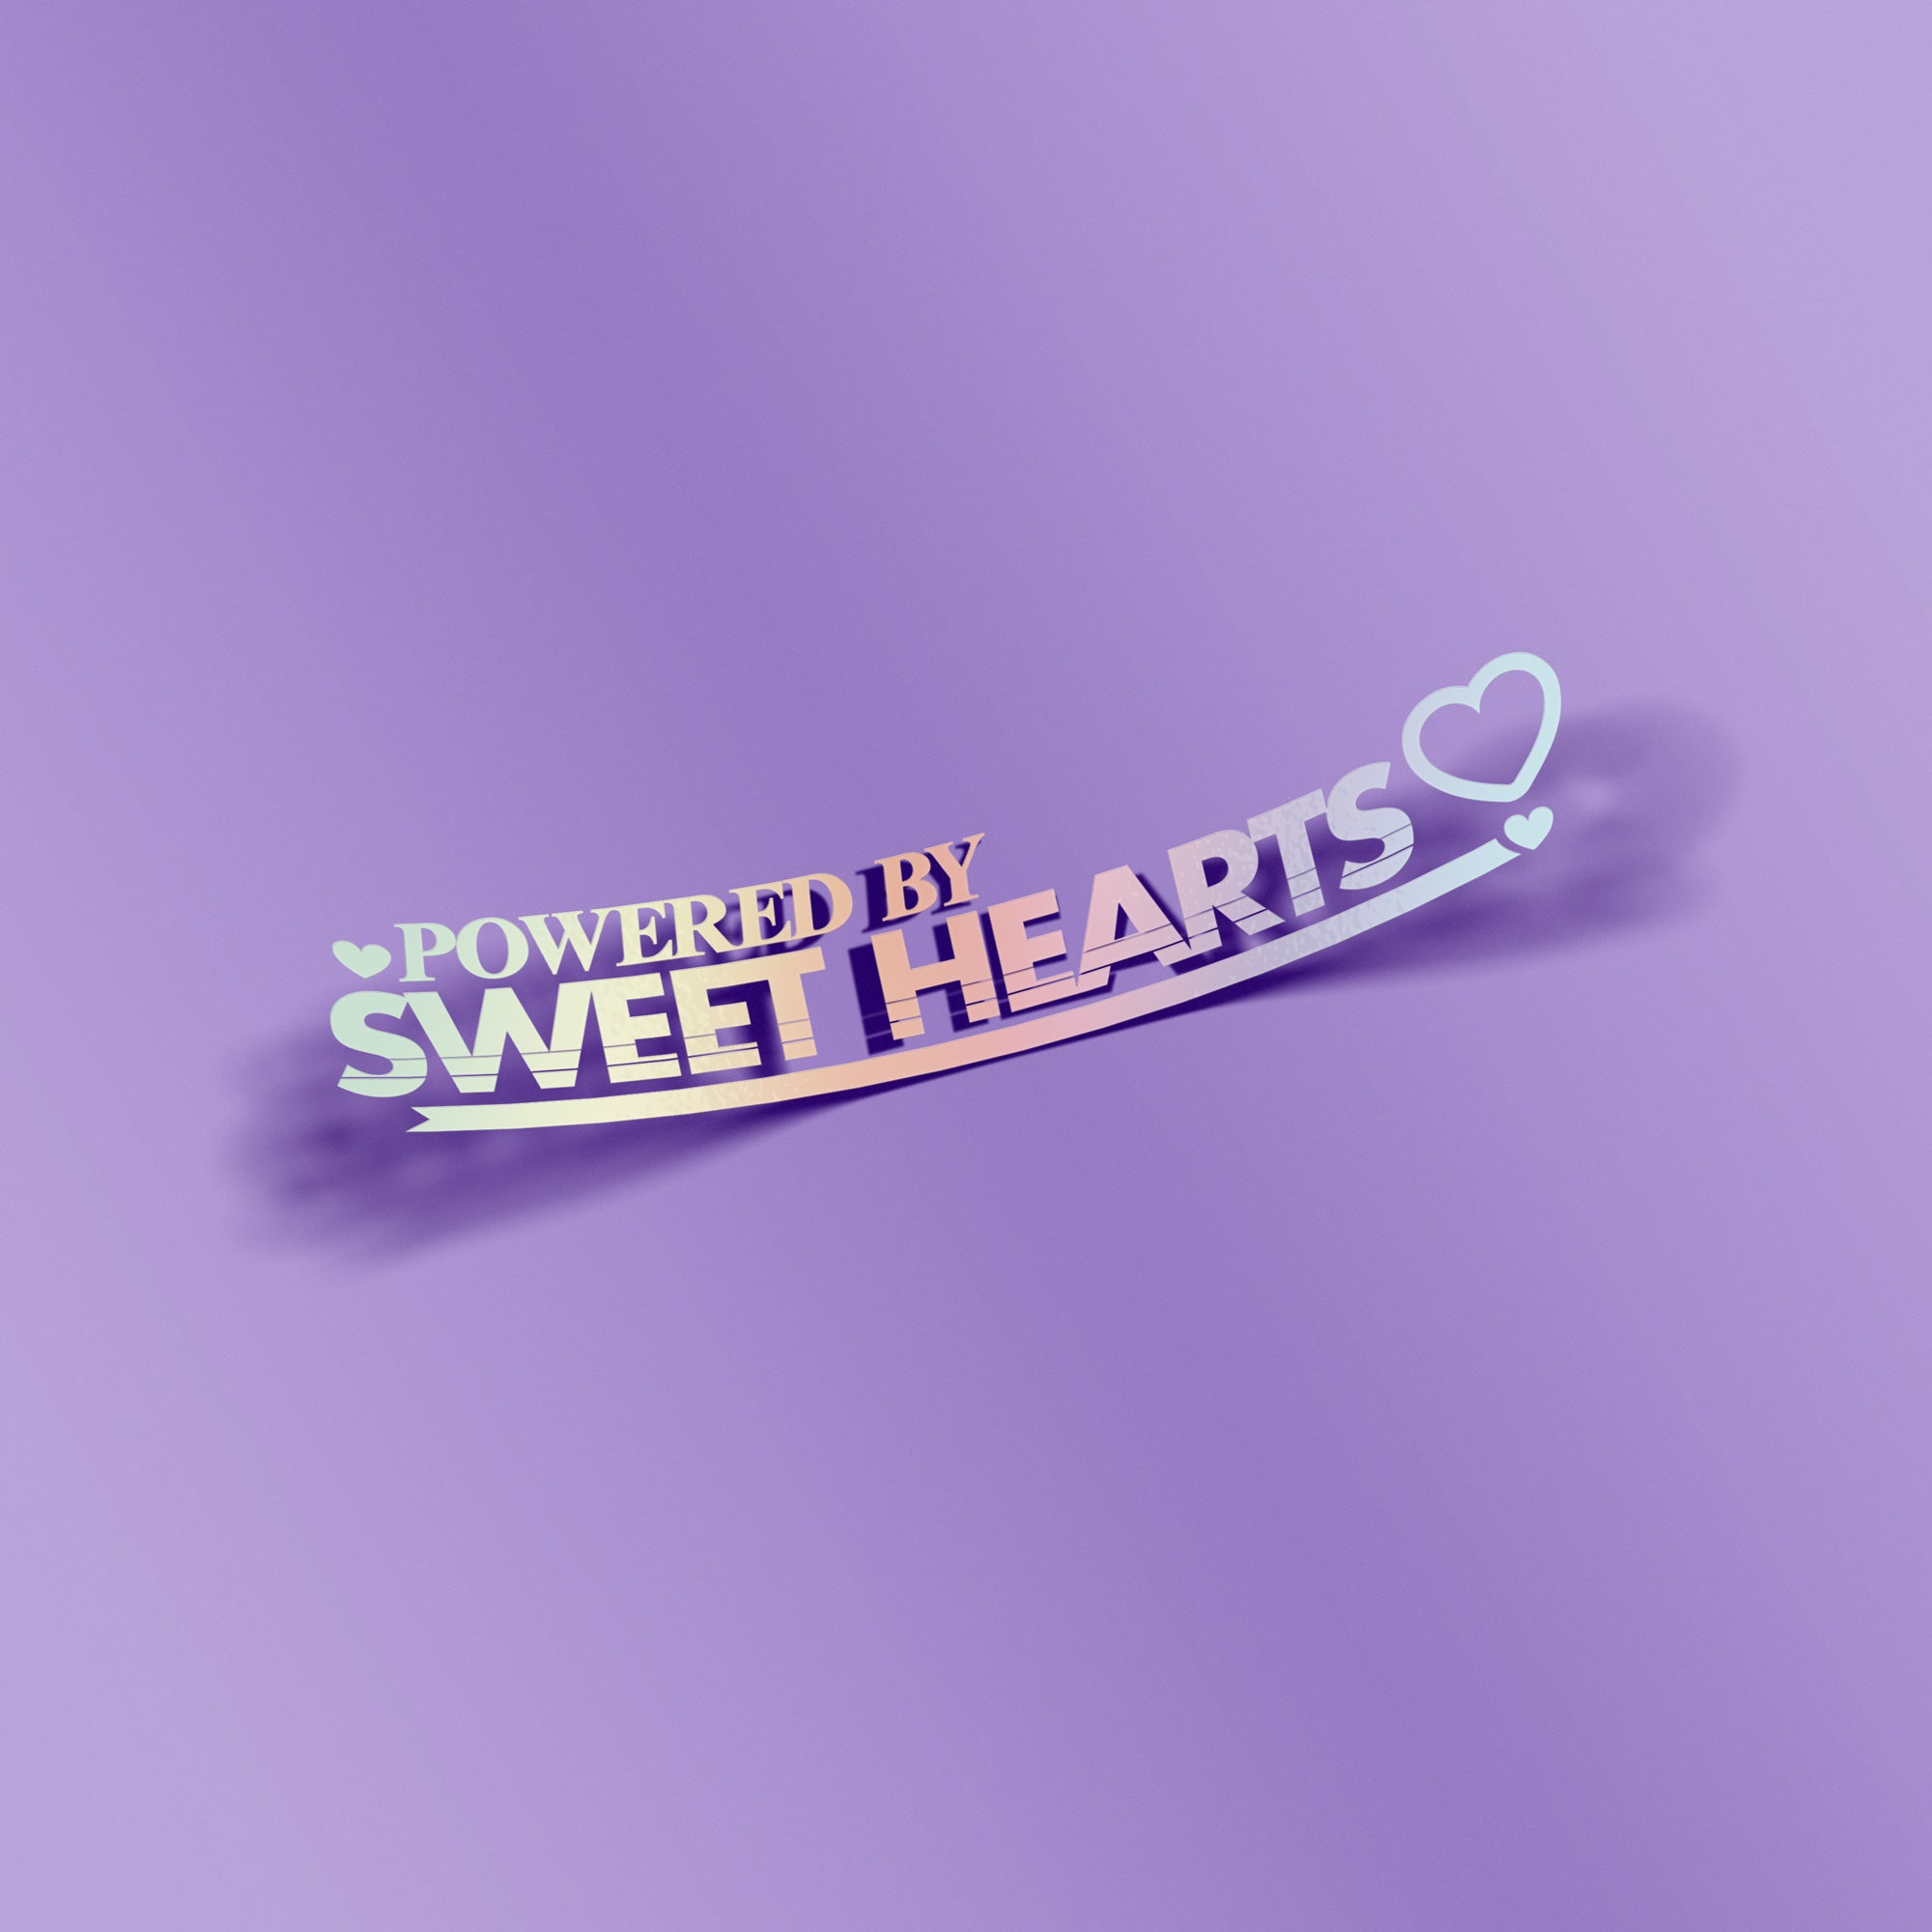 Powered by Sweethearts - VINYL HOUZE